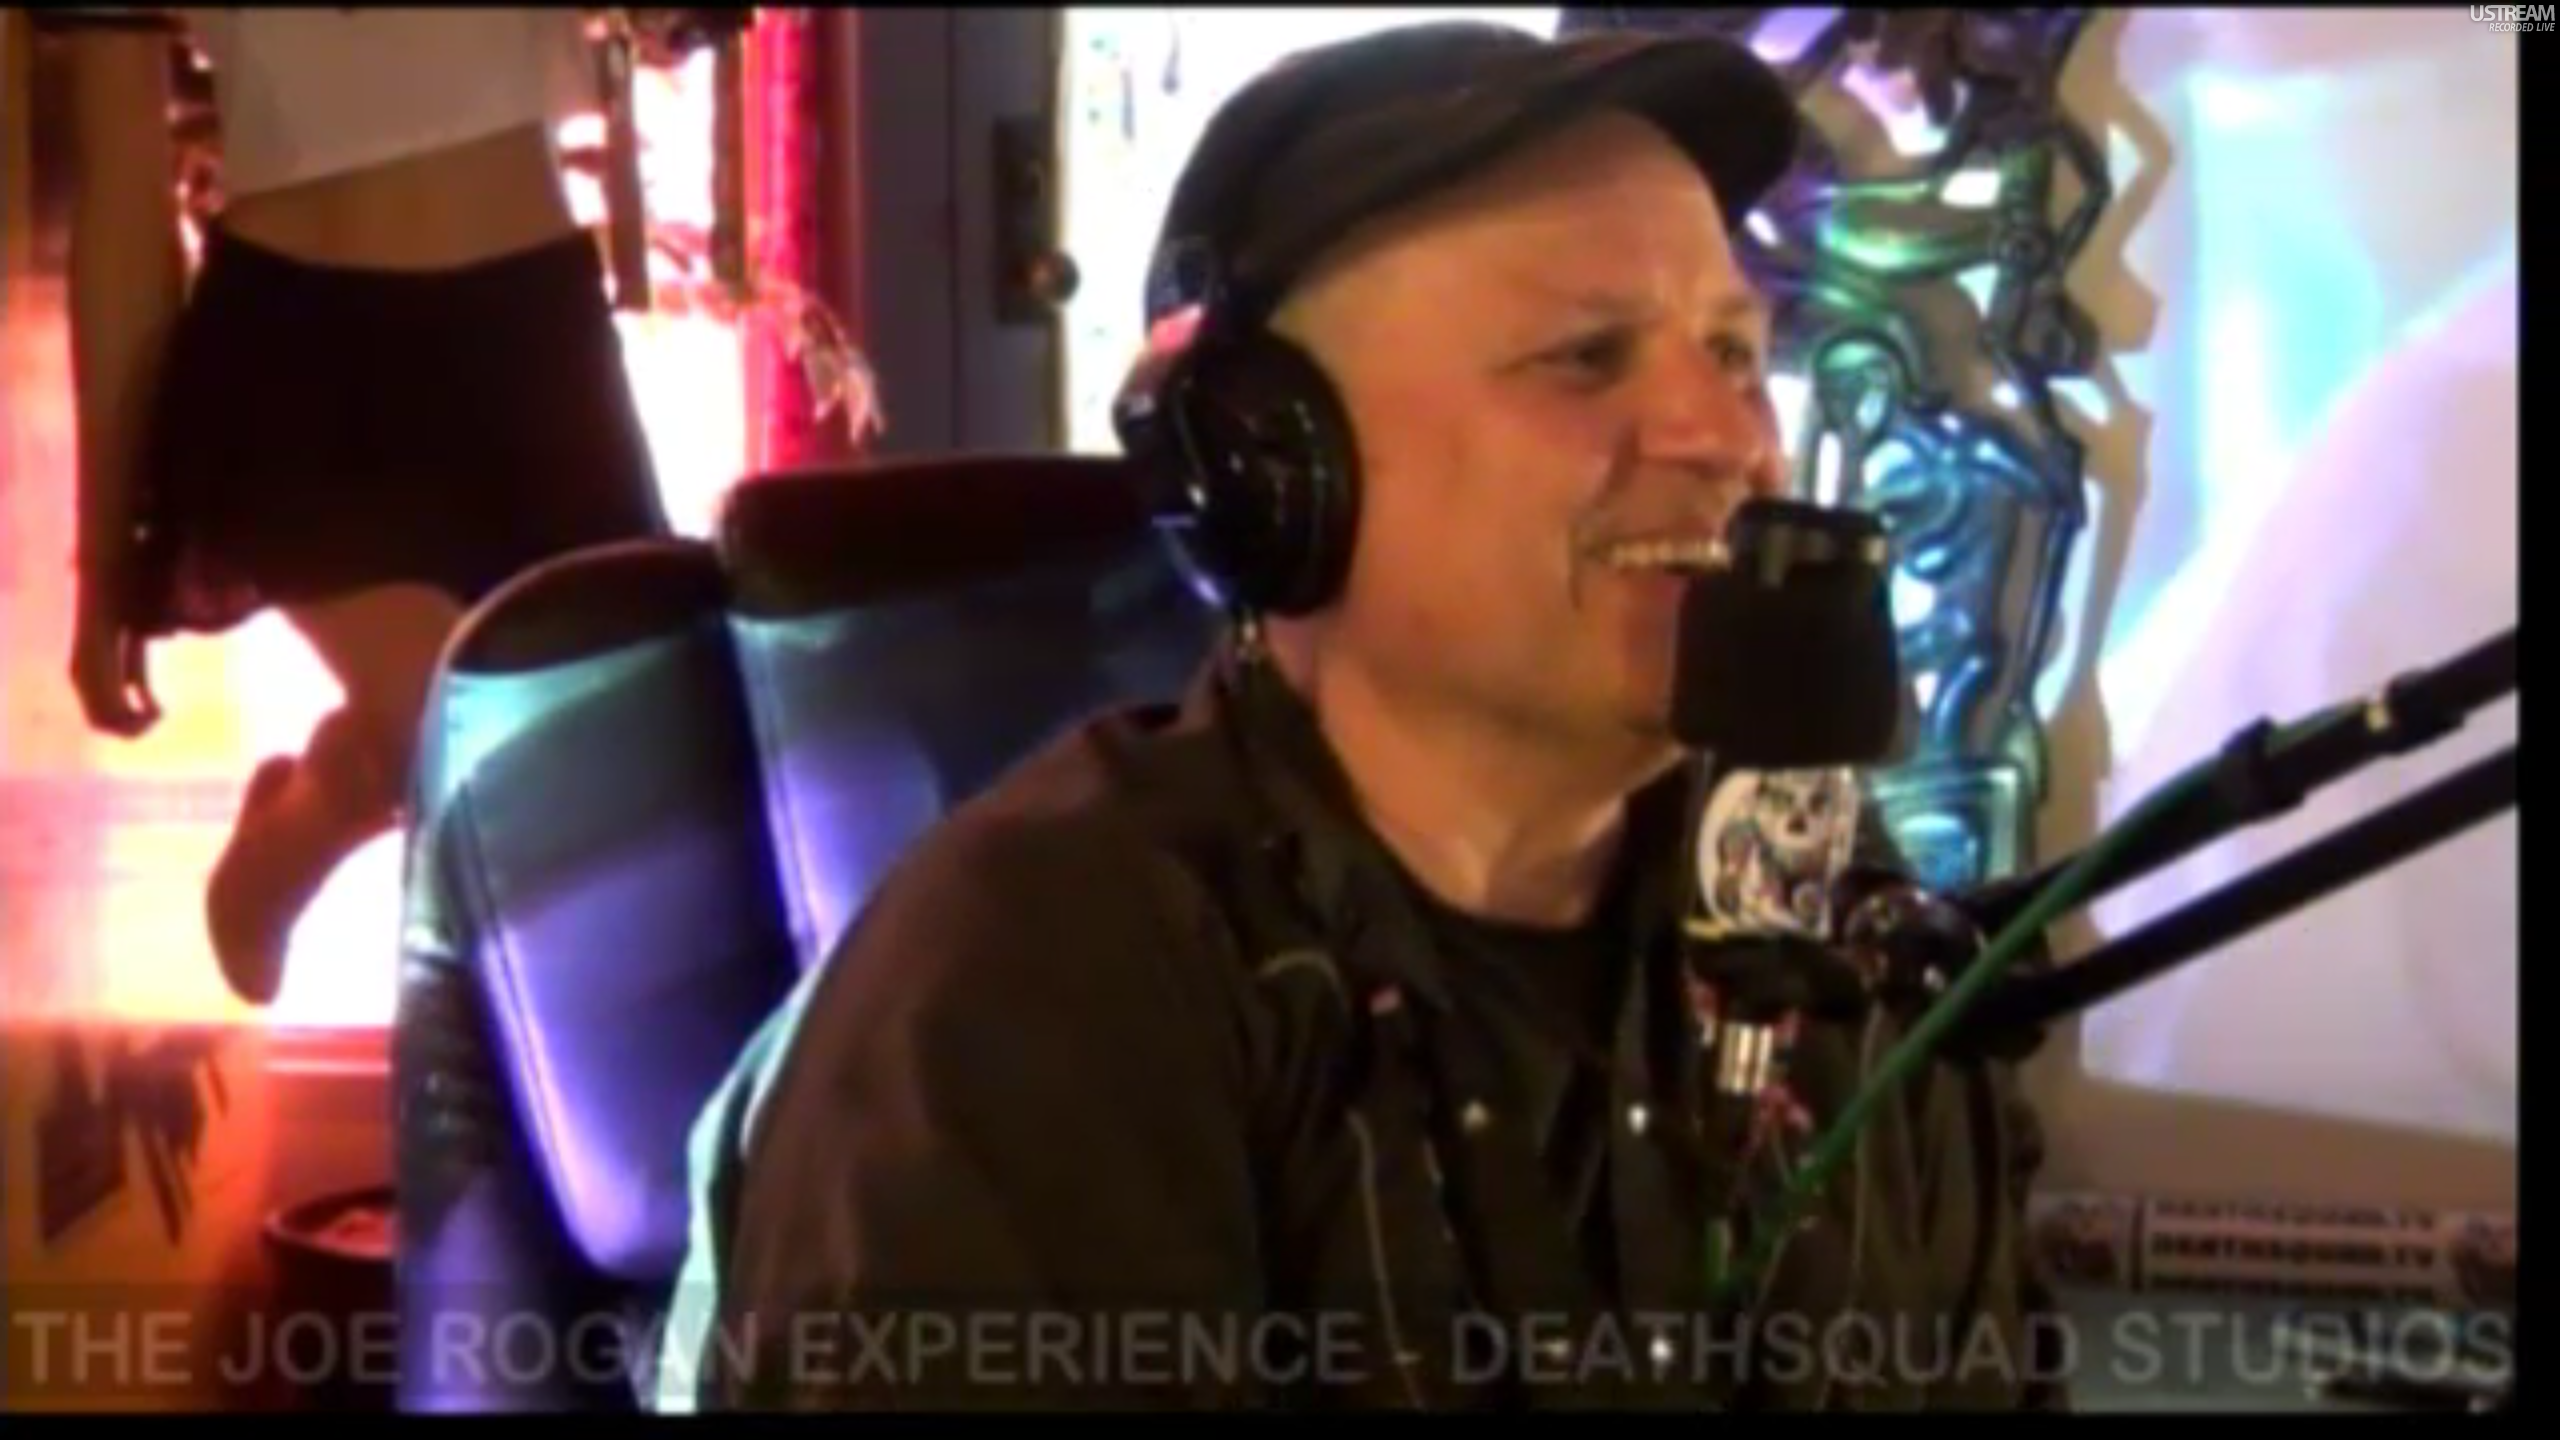 The Joe Rogan Experience #223 - Bobcat Goldthwait, Brian Redban